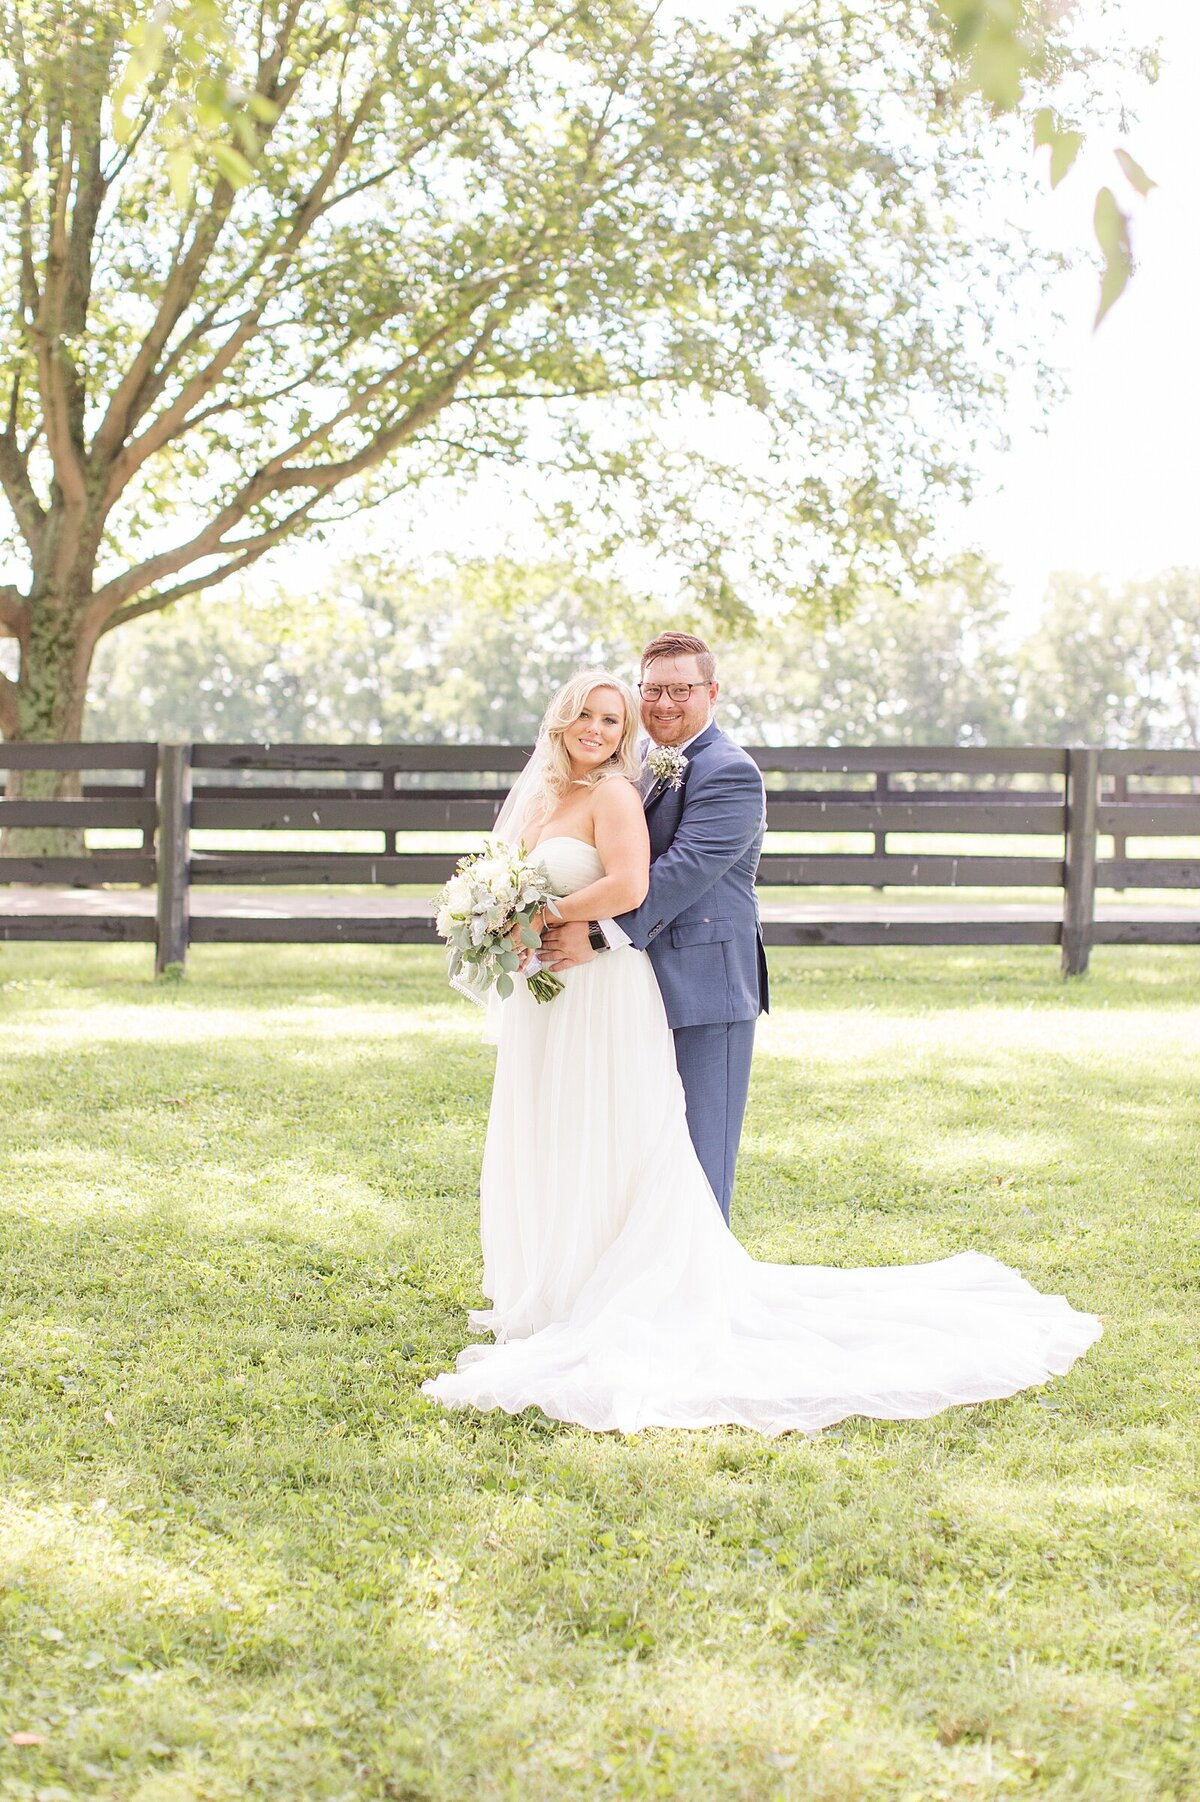 Kara Webster Photography | Mac & Maggie | Bradshaw-Duncan House Louisville, KY Wedding Photographer_0035